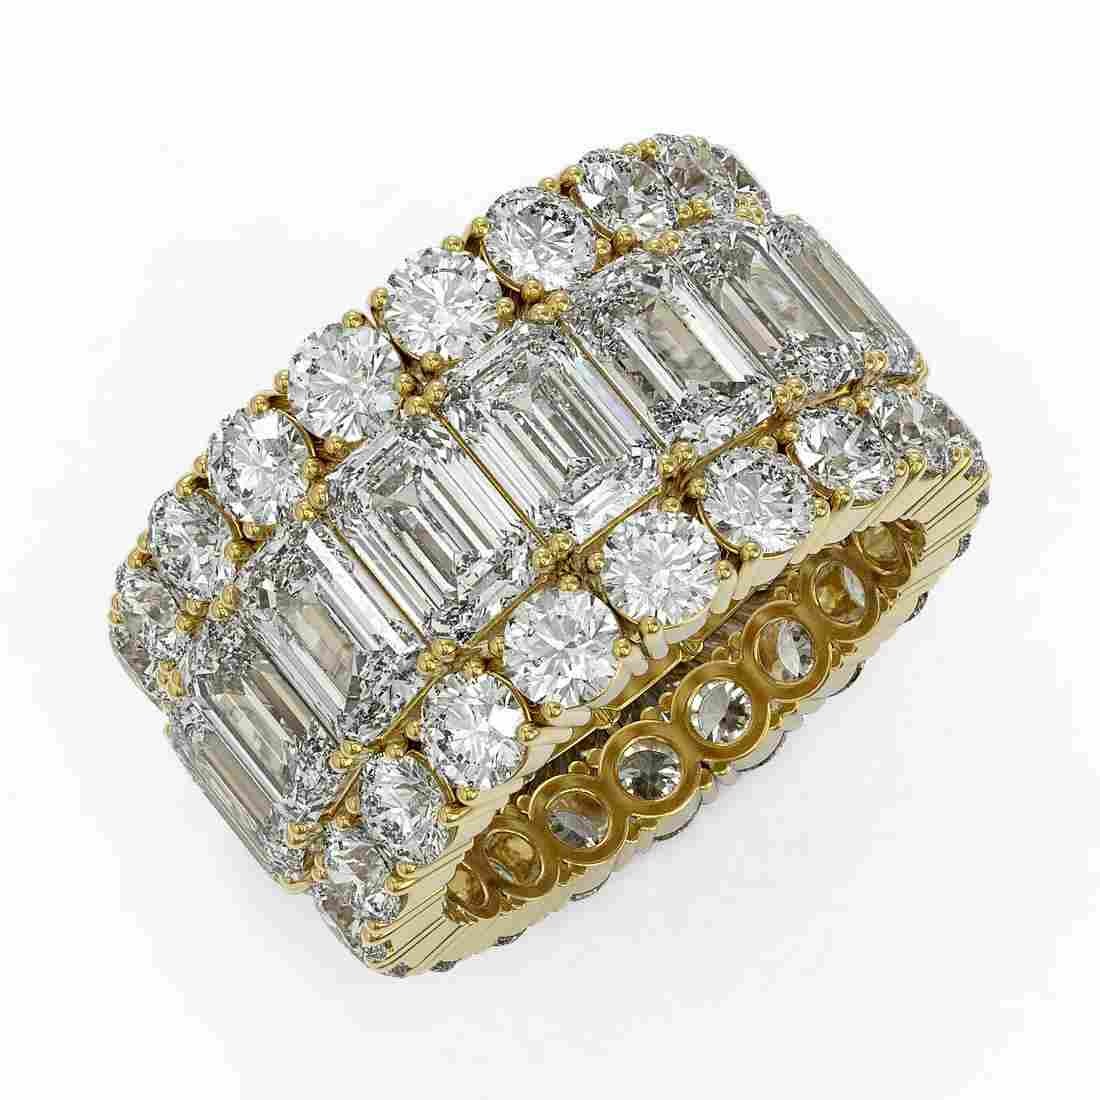 13.87 ctw Emerald Cut Diamond Eternity Ring 18K Yellow